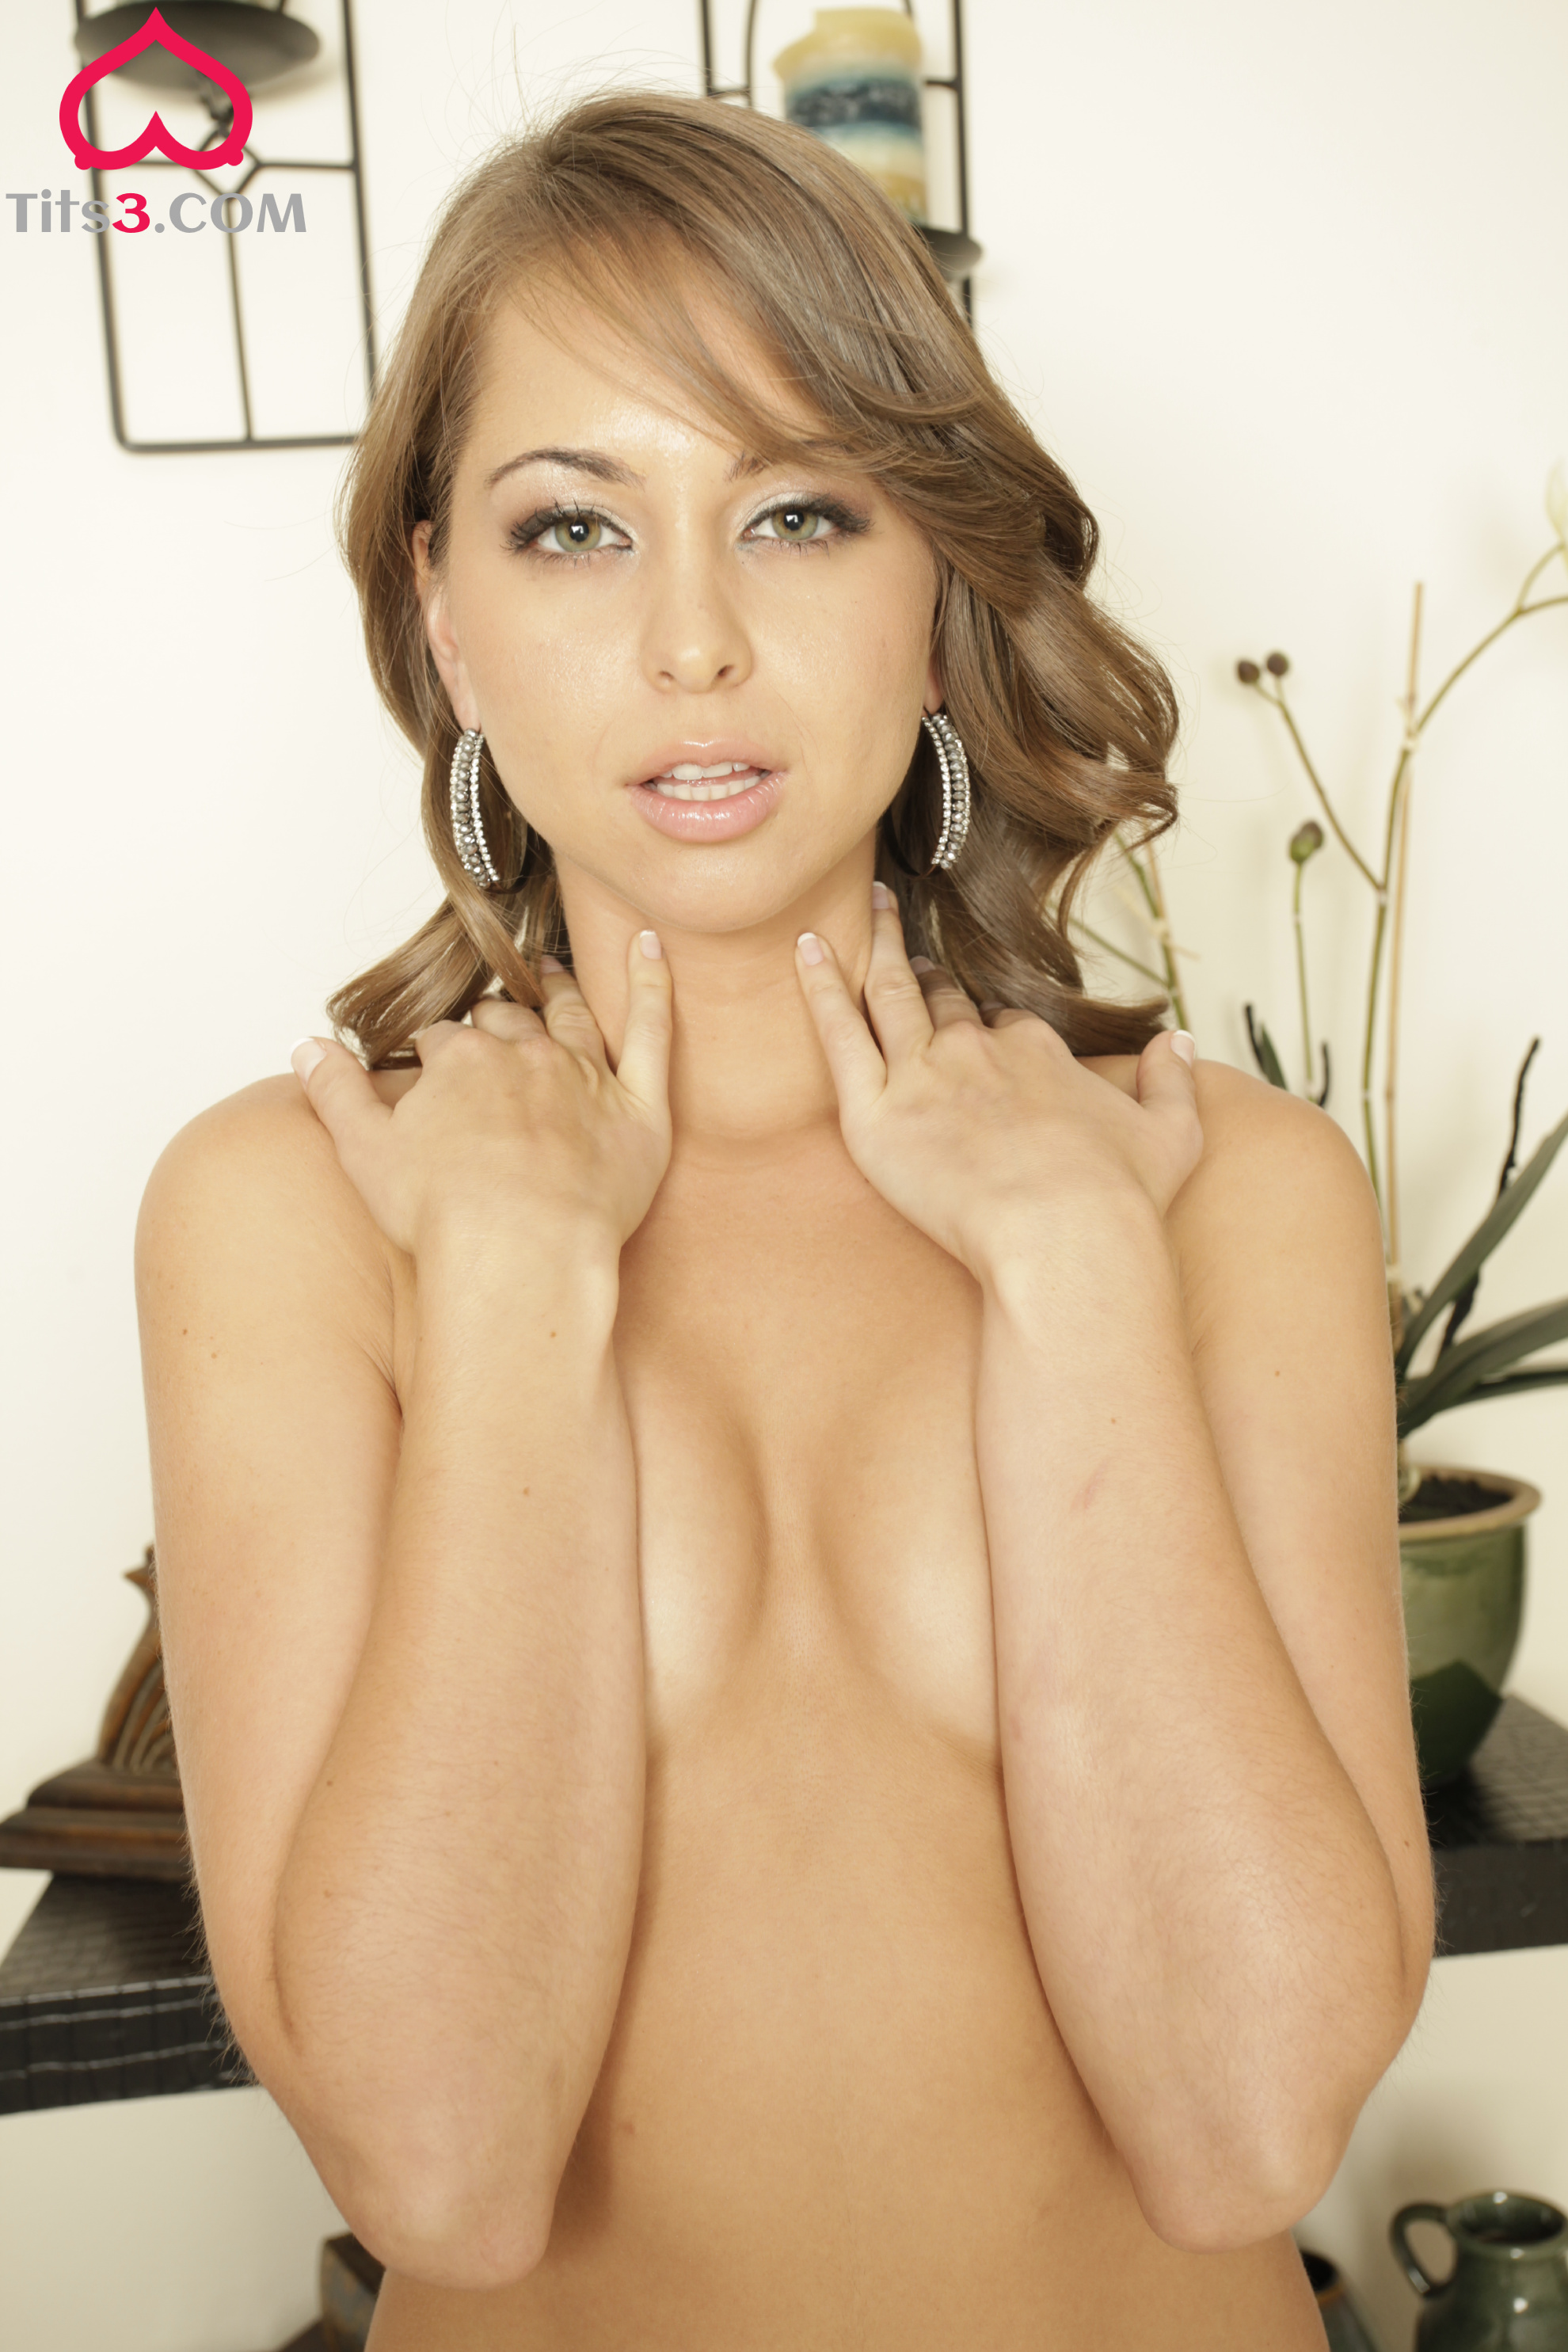 Riley Reid naked covers her breasts with her hands